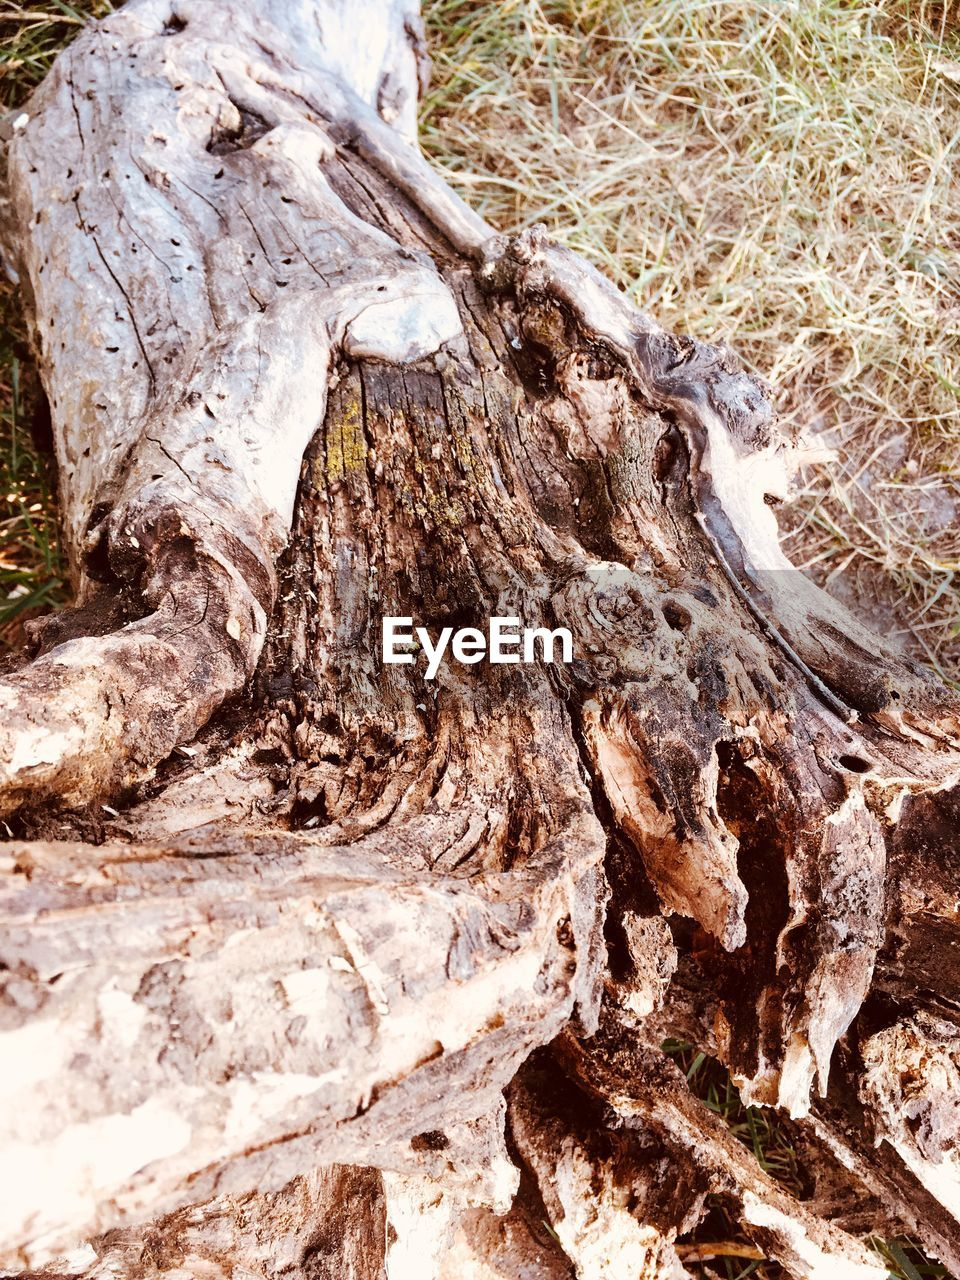 tree, wood - material, tree trunk, textured, trunk, nature, bark, wood, day, close-up, no people, plant, land, rough, outdoors, log, forest, dead plant, beauty in nature, tree stump, driftwood